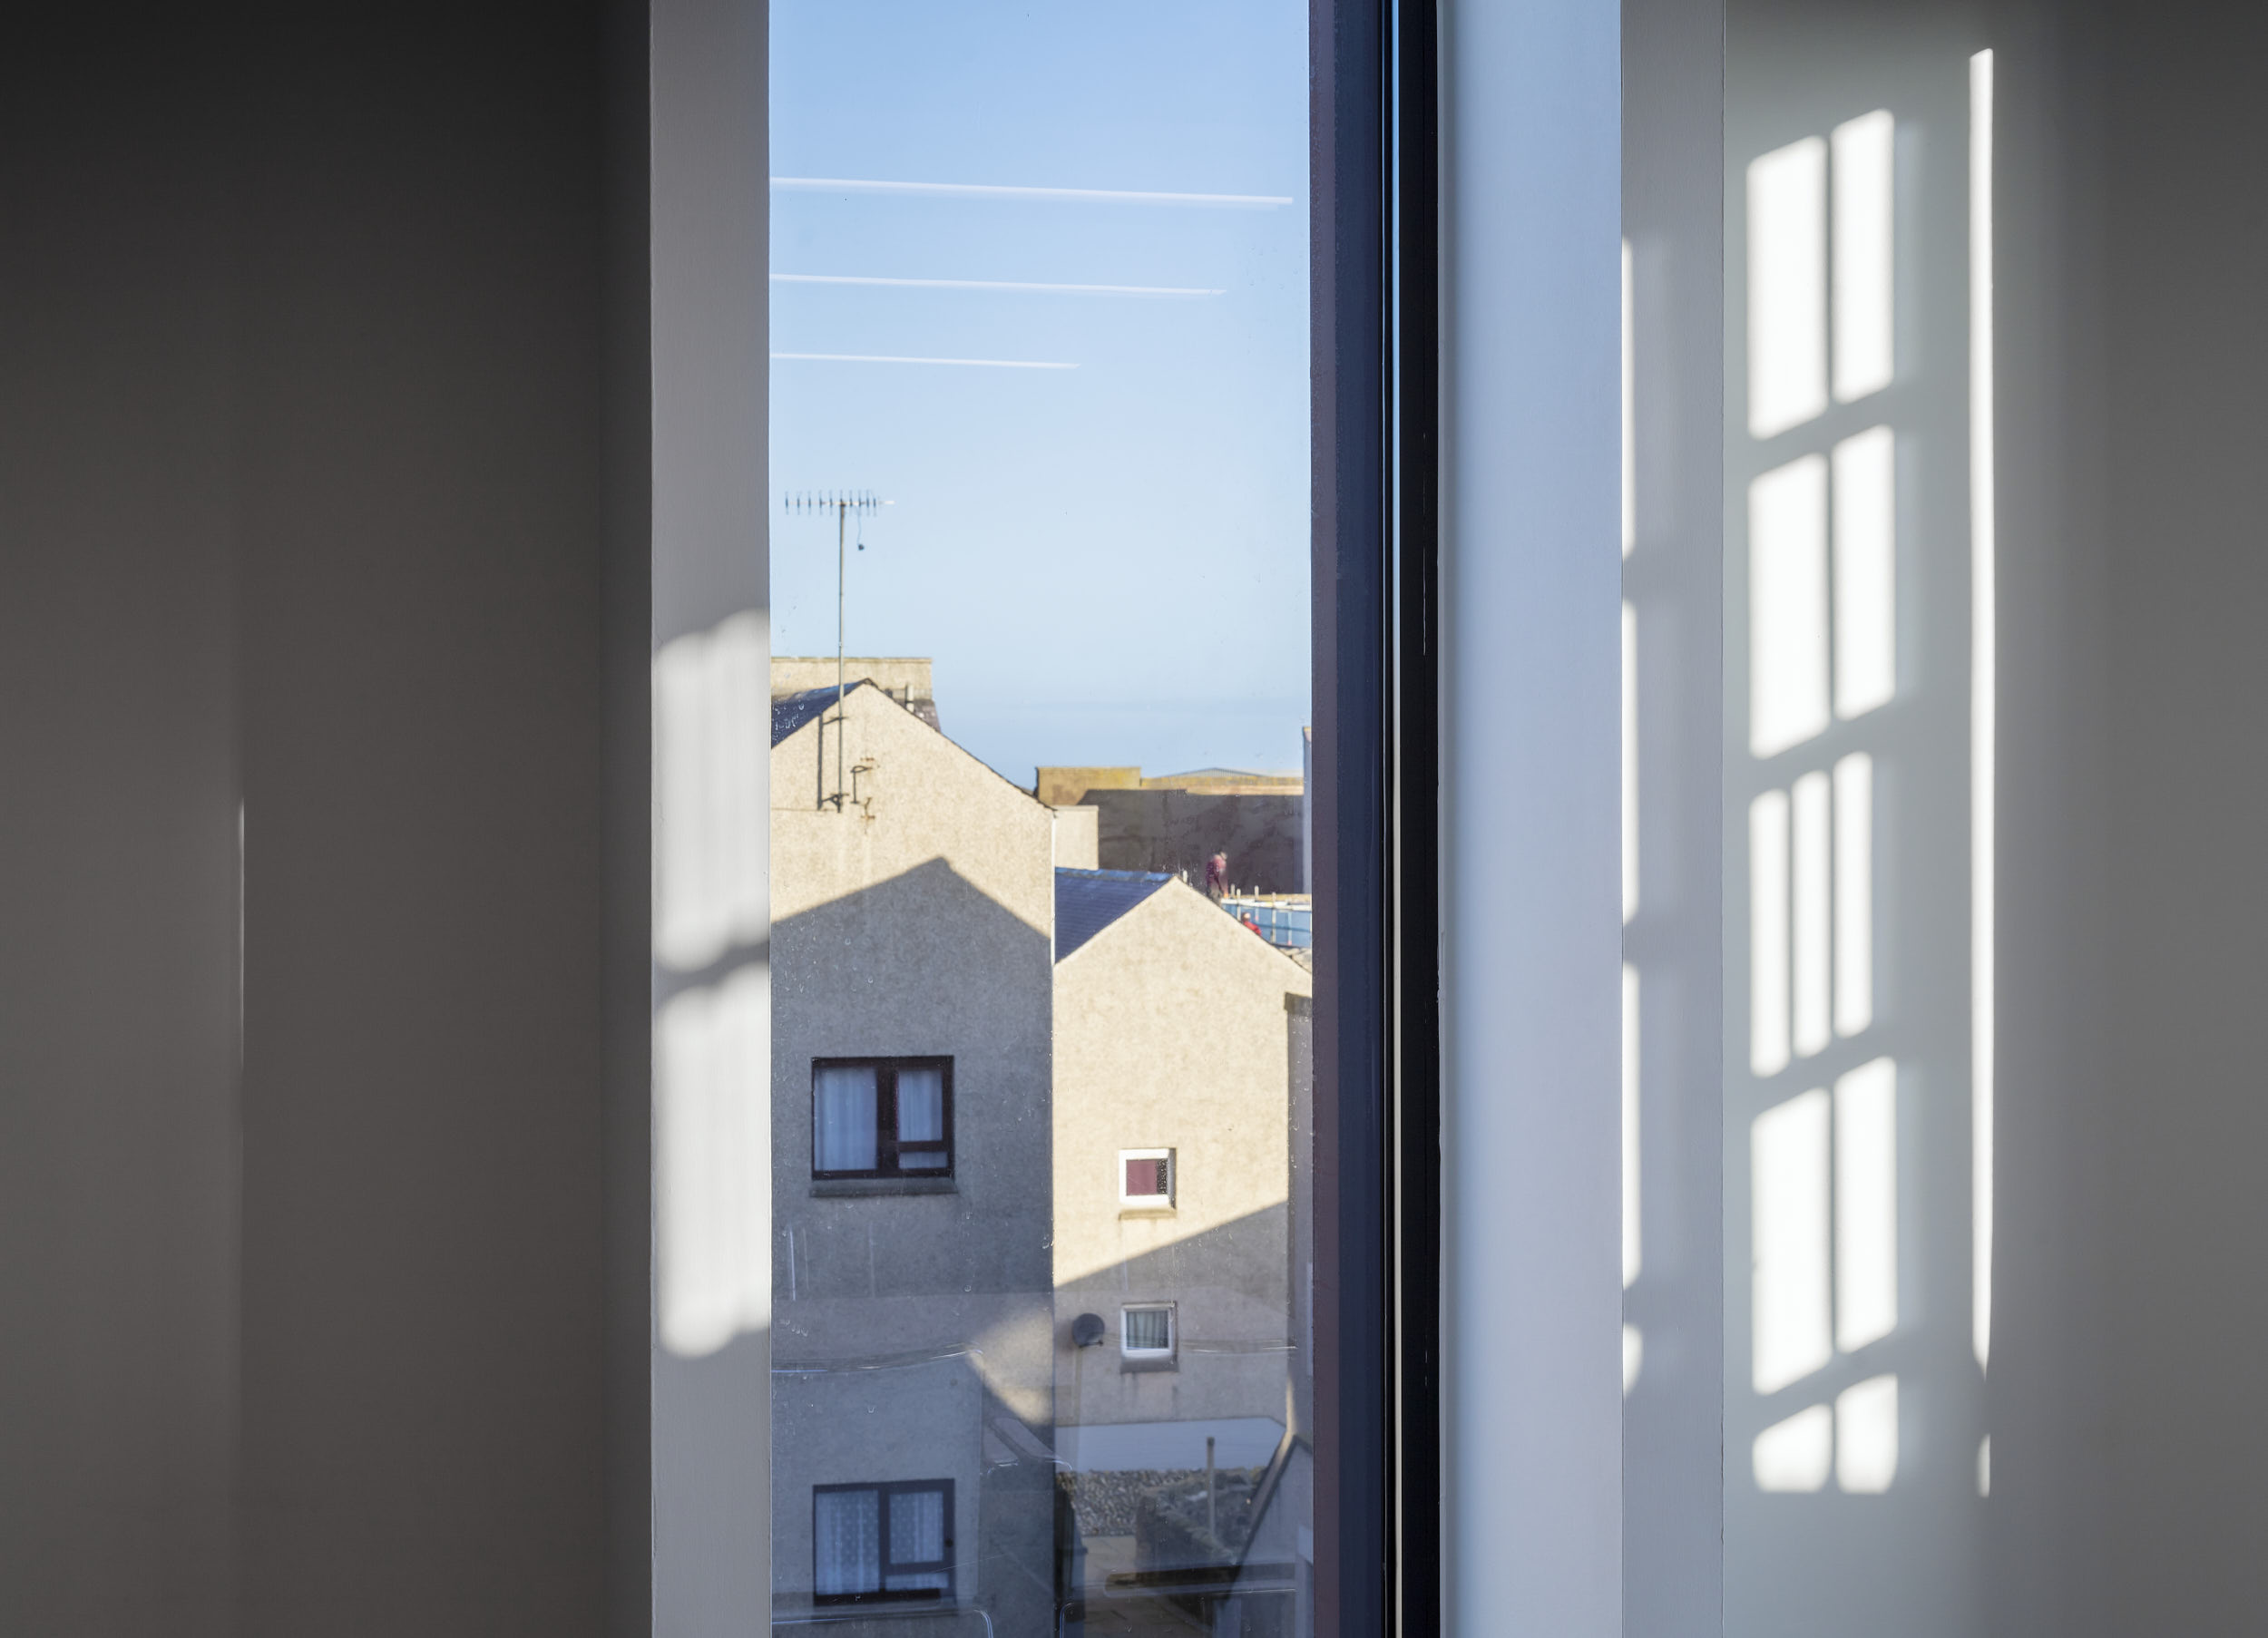 Meeting room provides great views and delightful architectural moments.